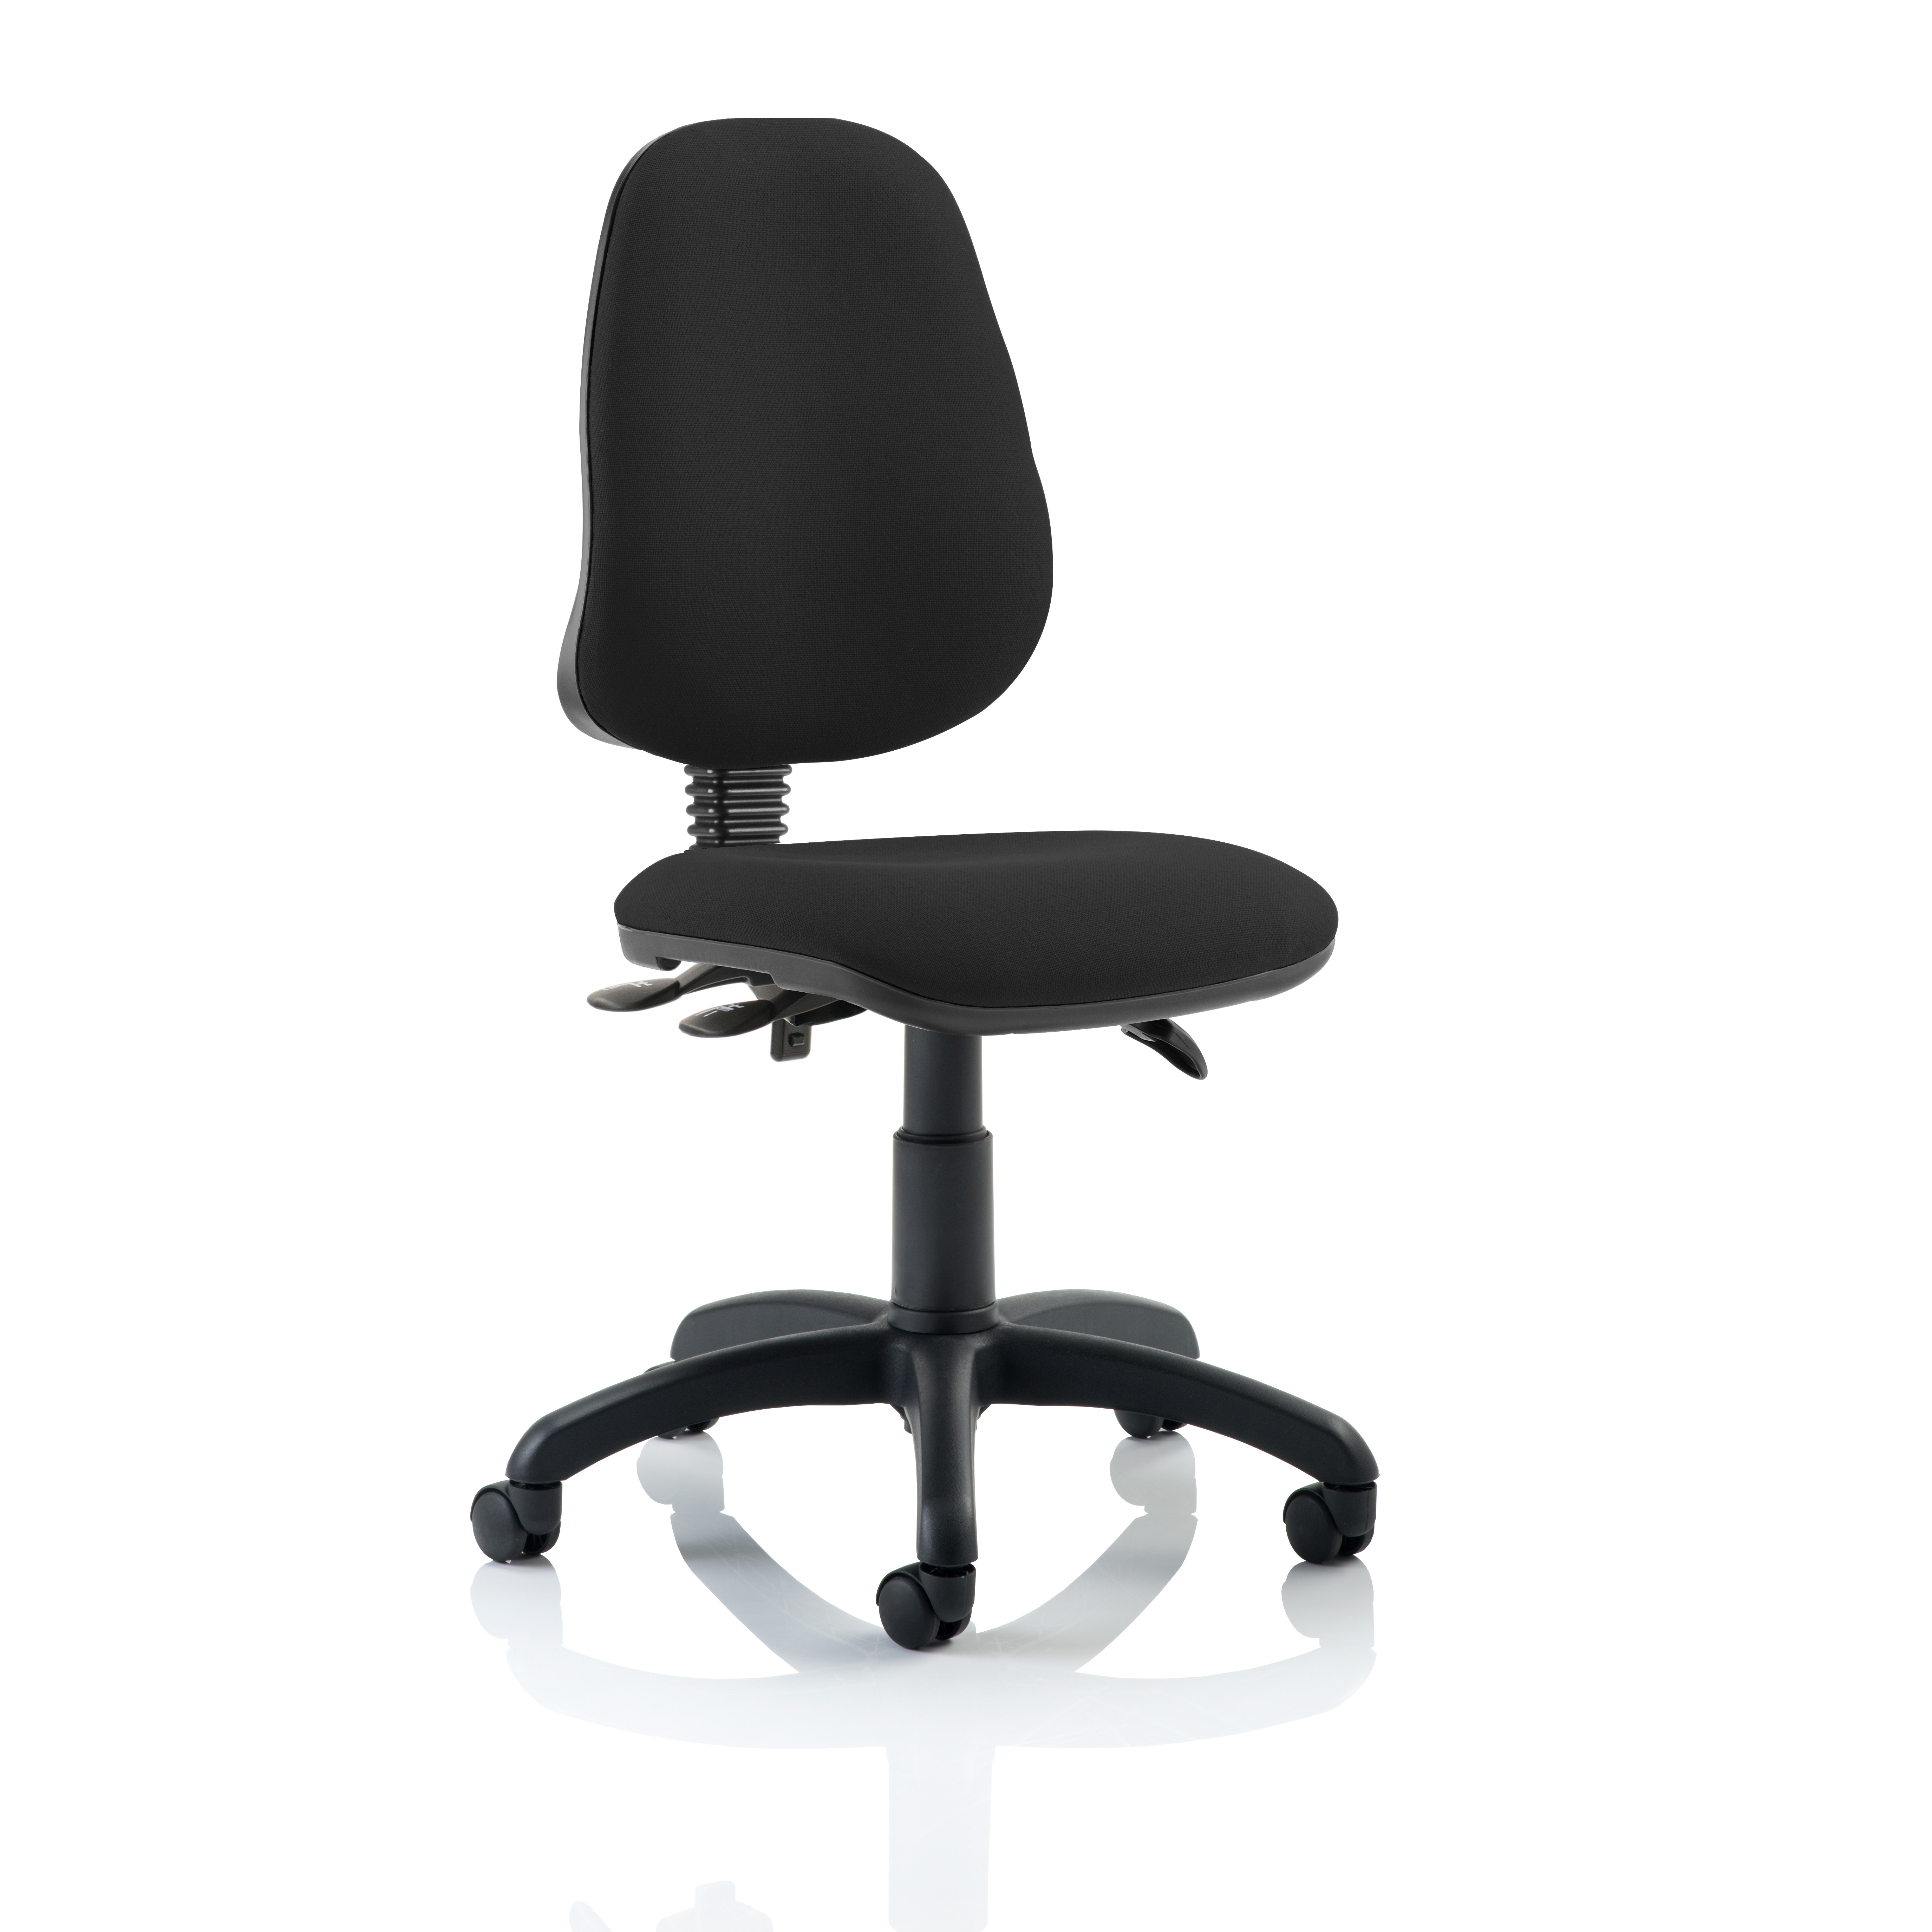 Trexus 3 Lever High Back Asynchronous Chair Black 480x450x490-590mm Ref OP000031